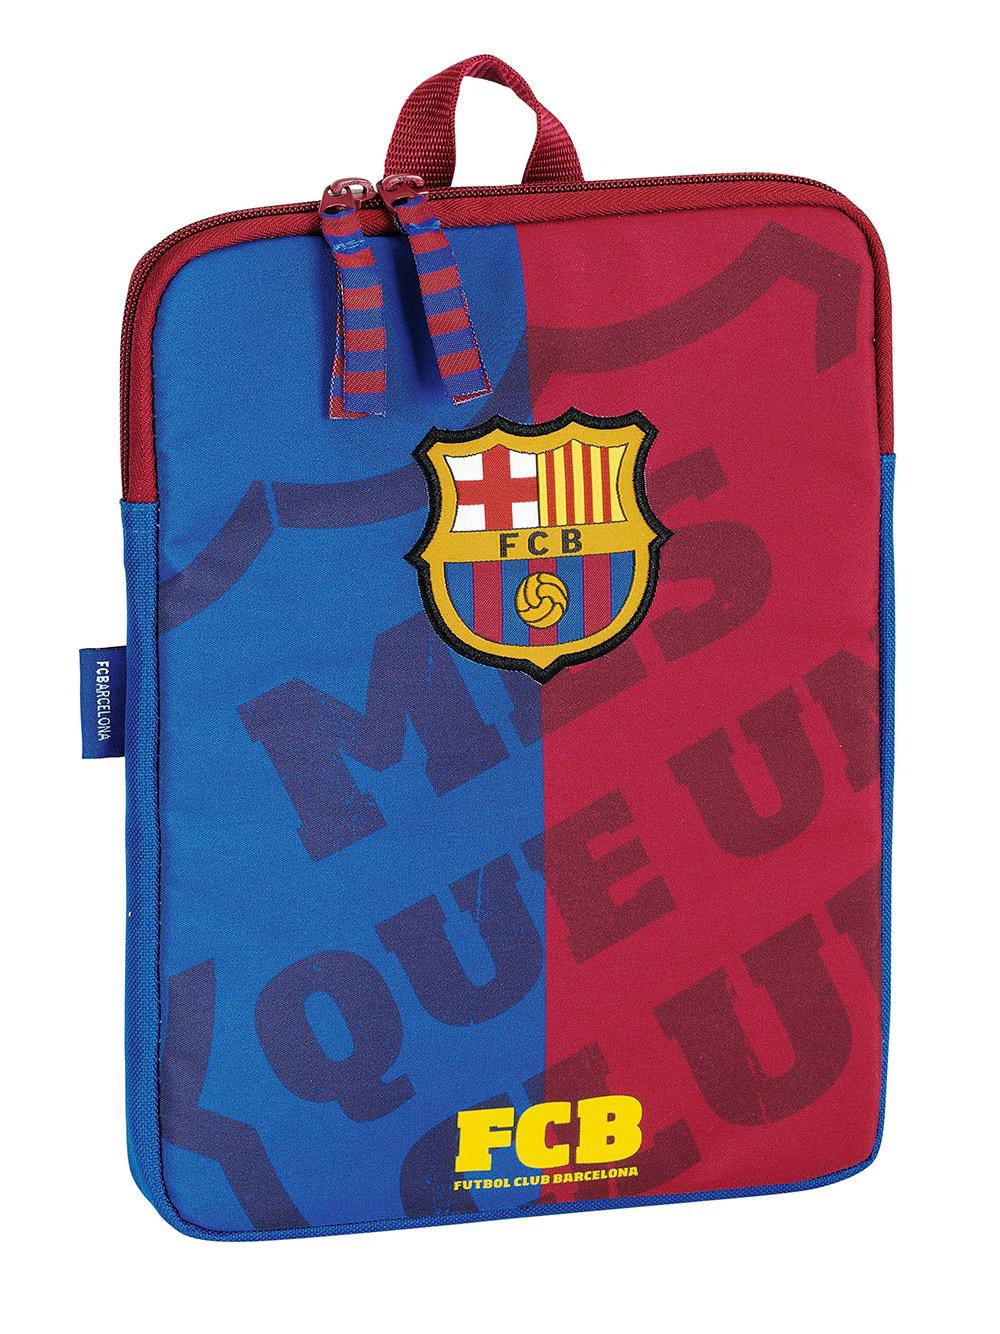 Fc Barcelona Tablet Sleeve Mquc 13/14